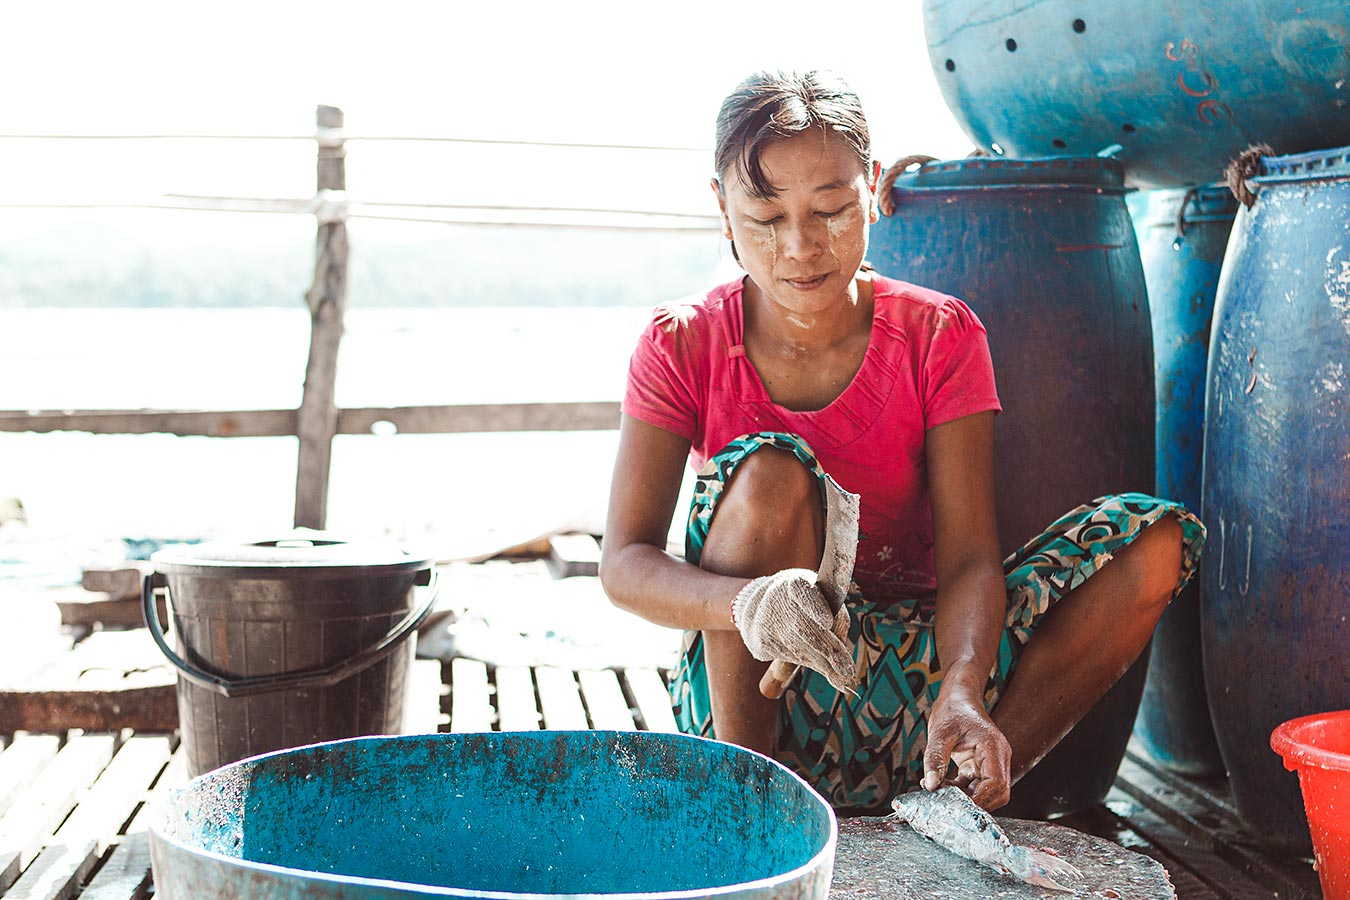 A woman cuts, cleans and salts the daily catch - fishing village in Southeast Asia